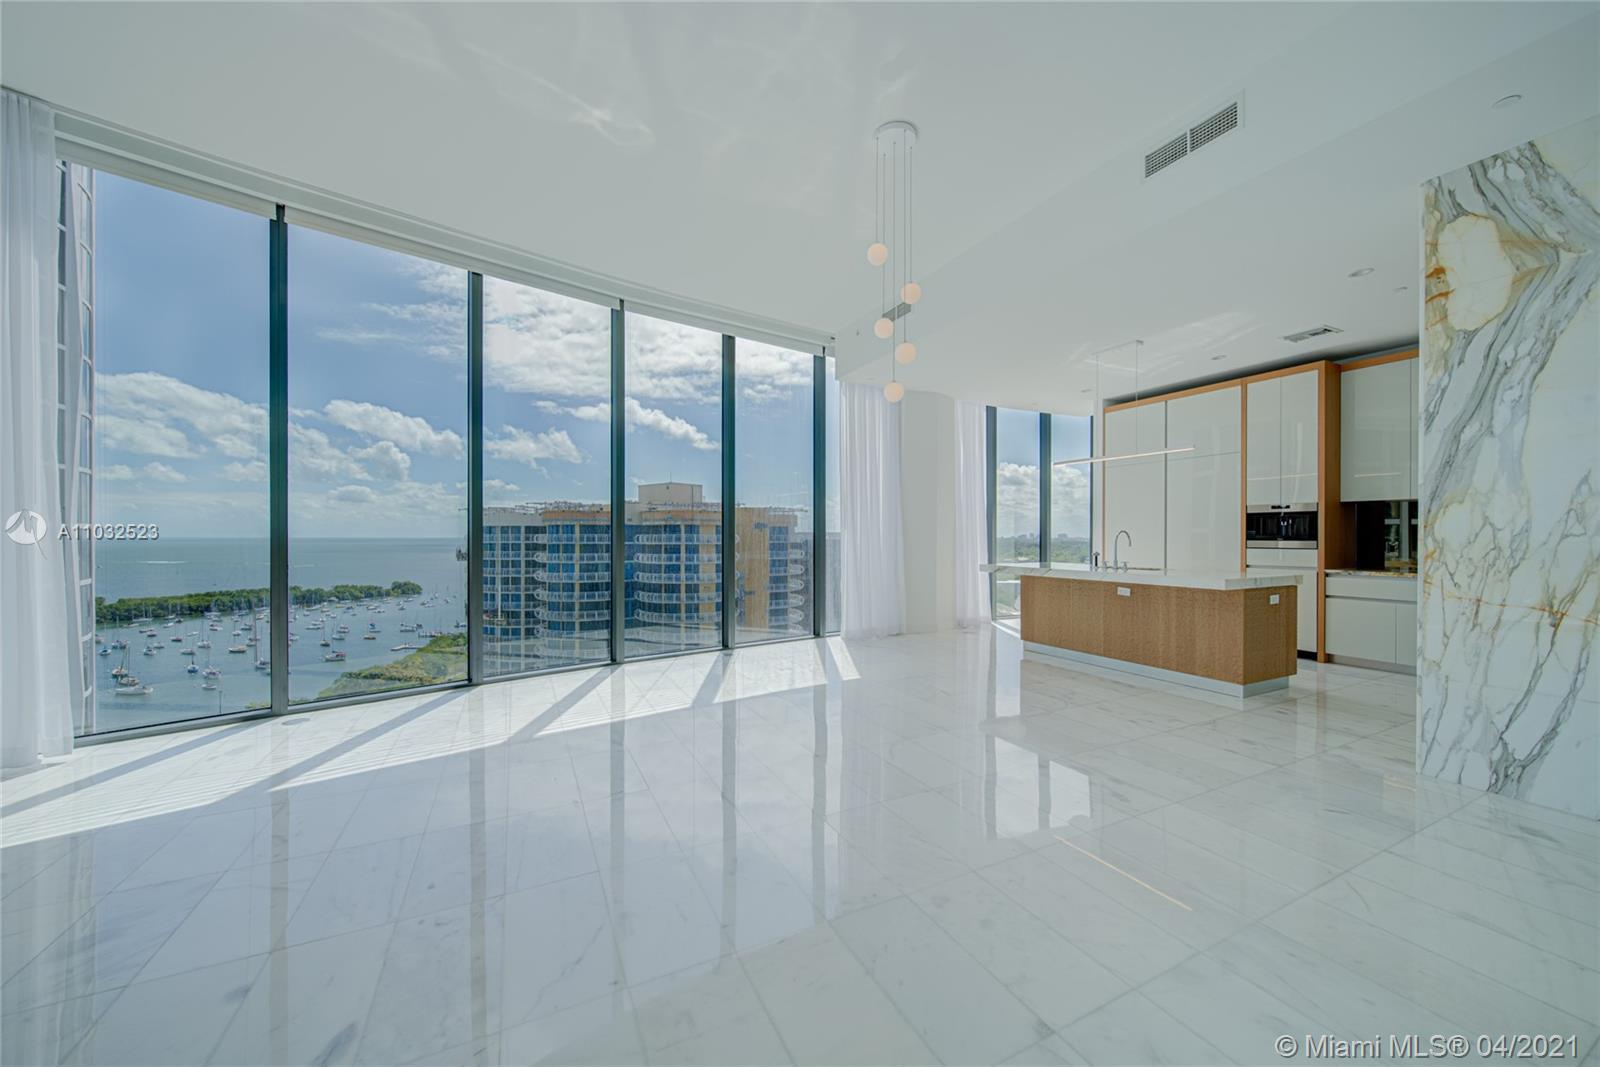 Magnificent bay front condo in Coconut Grove. Featuring a private elevator opening into a keyed foyer, this home offers 4 bedrooms, 5 1/2 baths, marble flooring through-out, 12 Ft floor-to-ceiling windows overlooking Biscayne Bay, custom ItalKraft closets, Subzero & Wolf appliances, and a 440 SqFt terrace. Hotel-like amenities include: 4 pools, cabanas, BBQ. 3D Tour available.